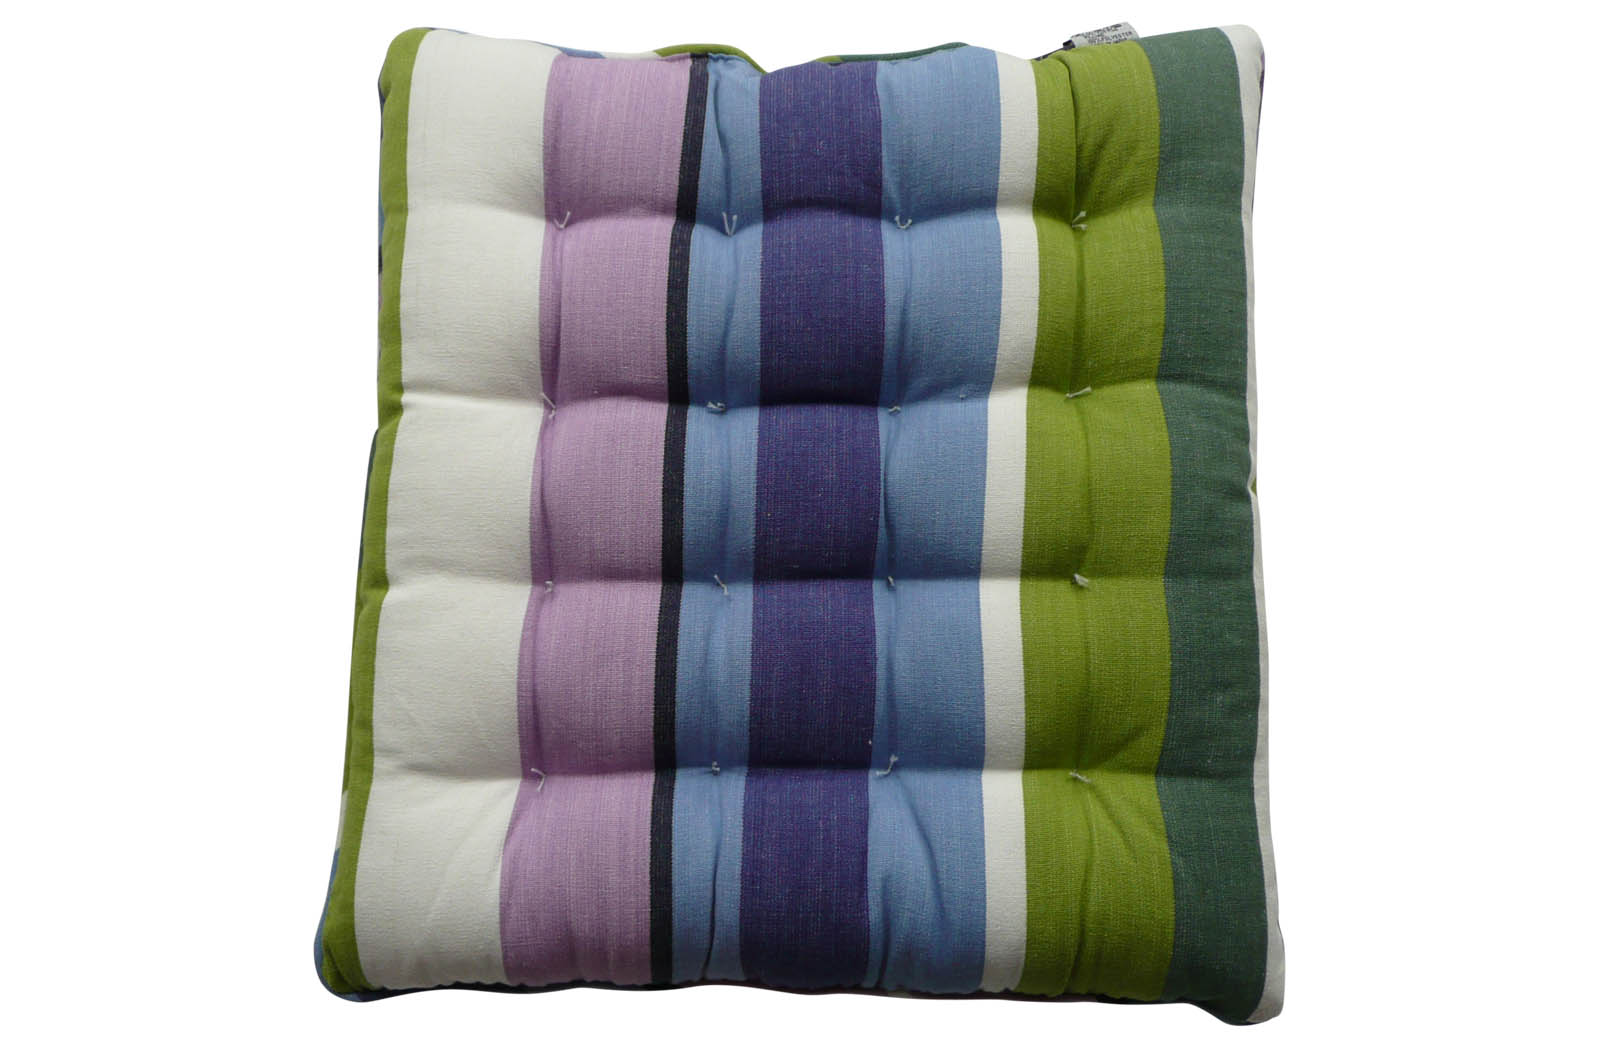 Striped Seat Pads with Piping green, blue, purple